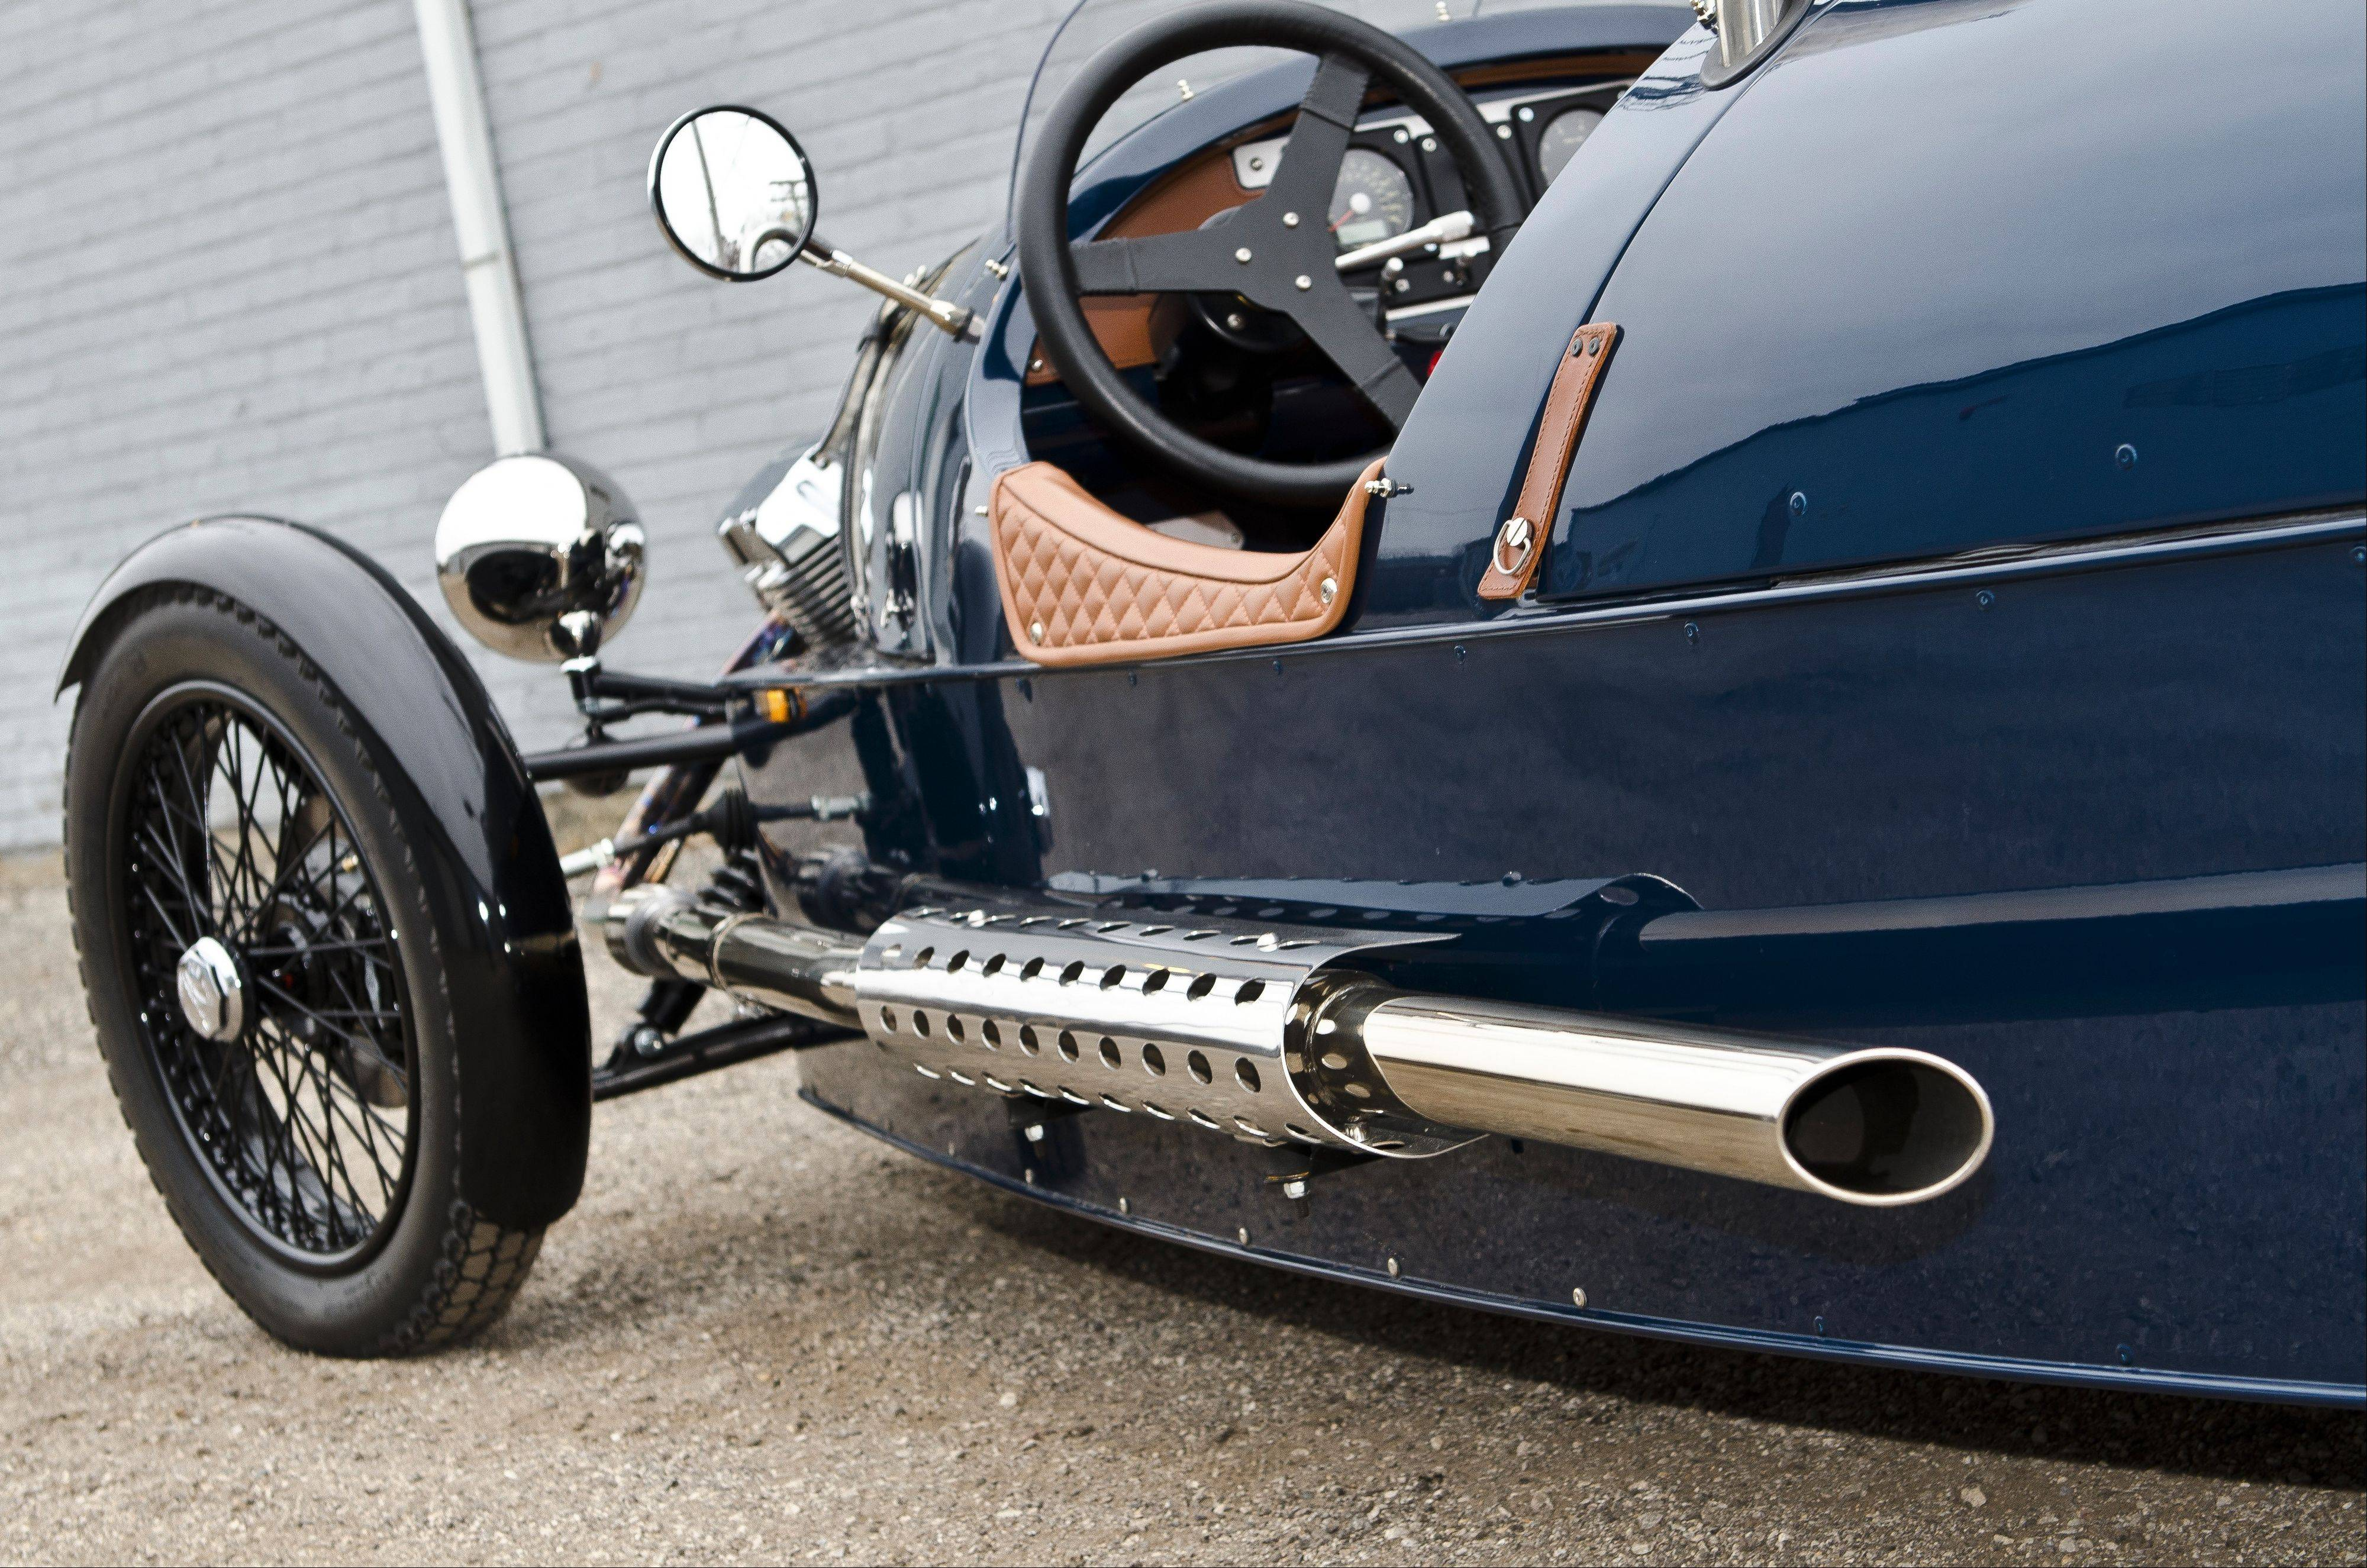 Dual exhausts extend down the sides of the three-wheeled Morgan.